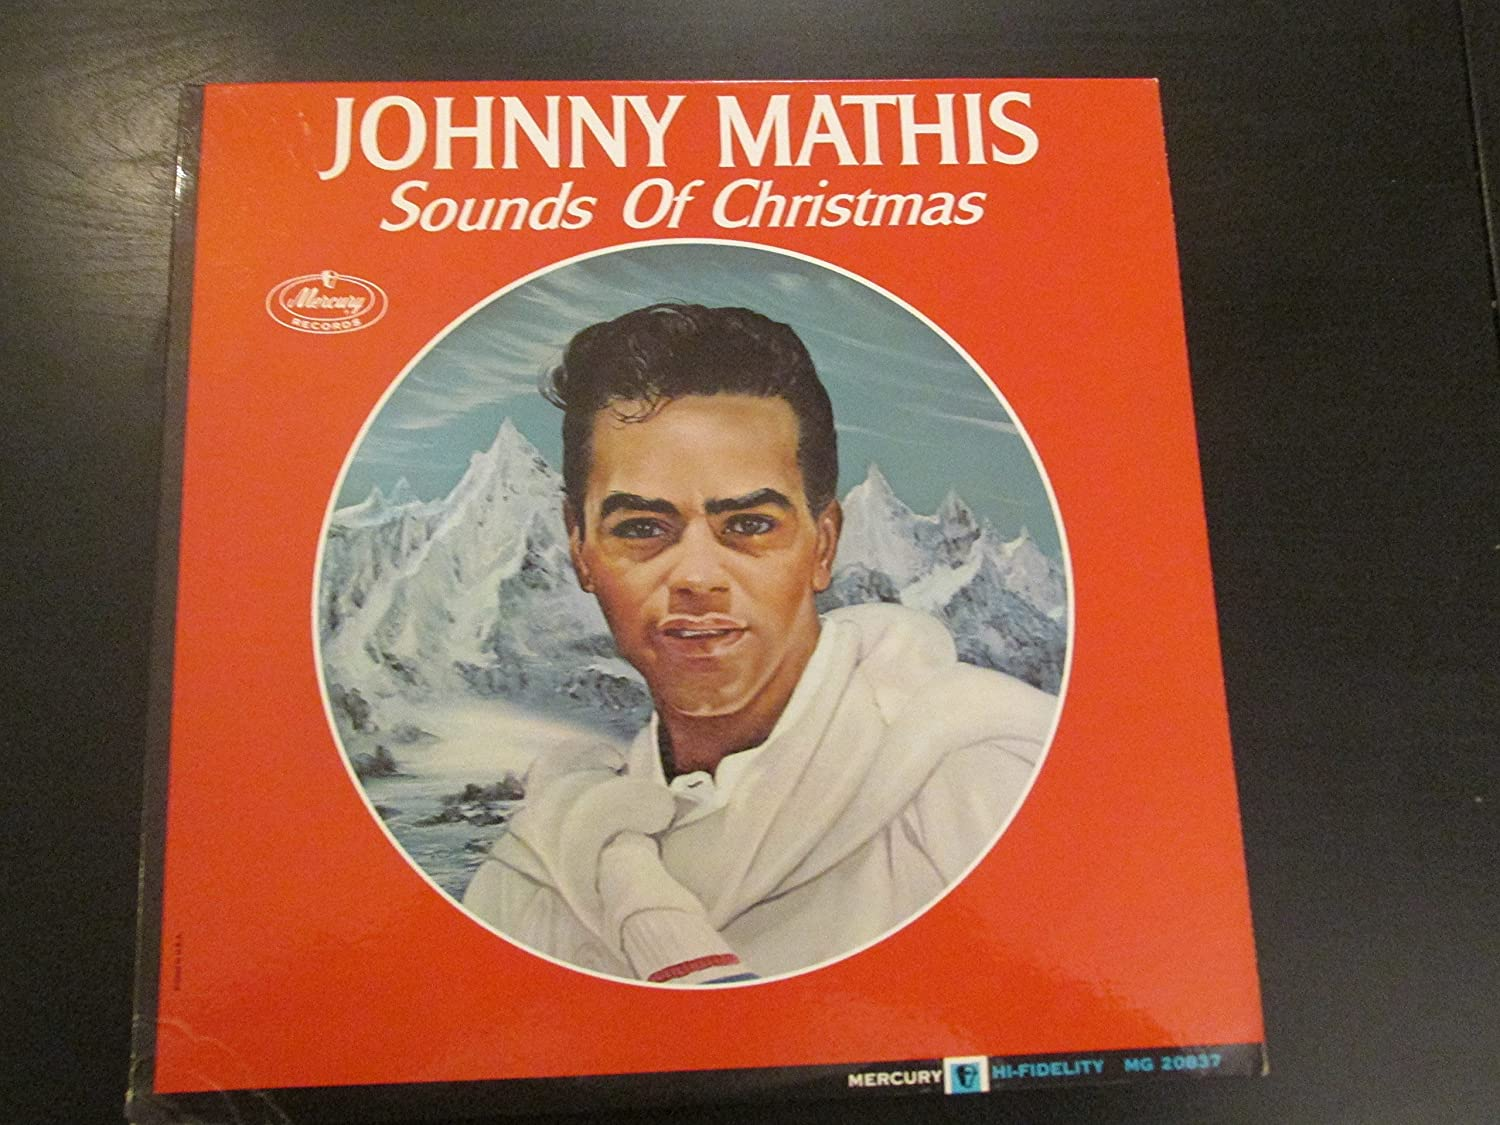 Johnny Mathis - Sounds of Christmas - Amazon.com Music